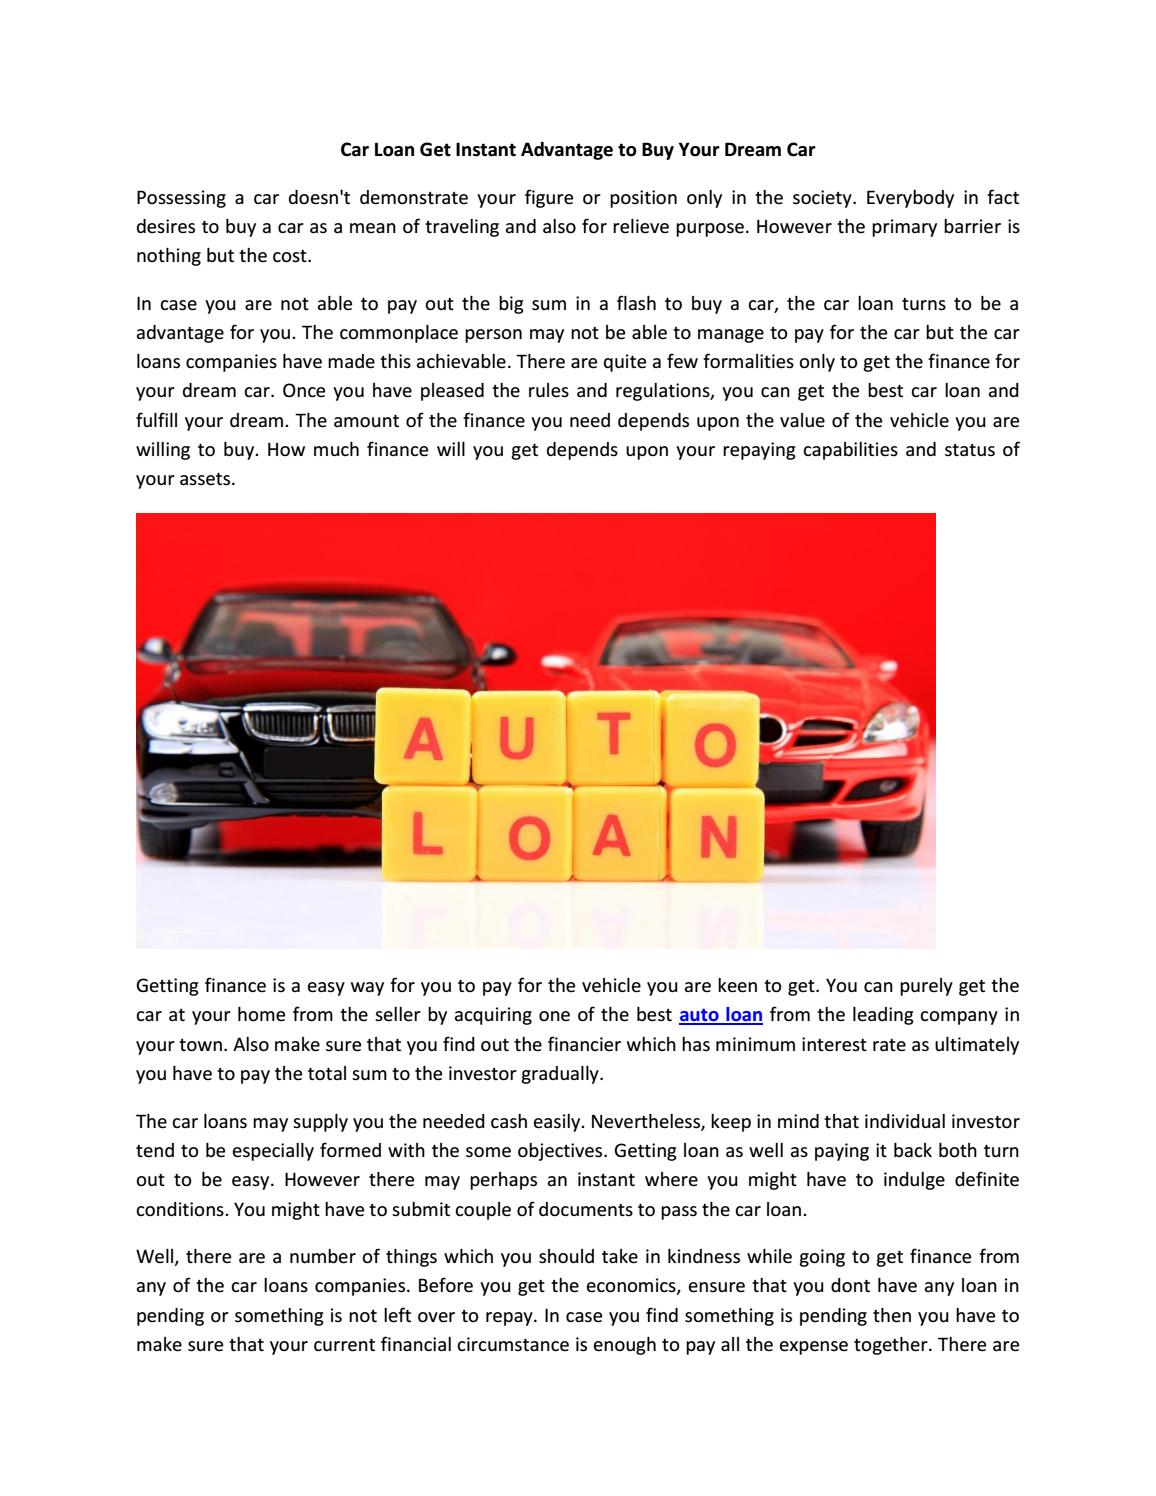 Car loan get instant advantage to buy your dream car by Anil Surma ...